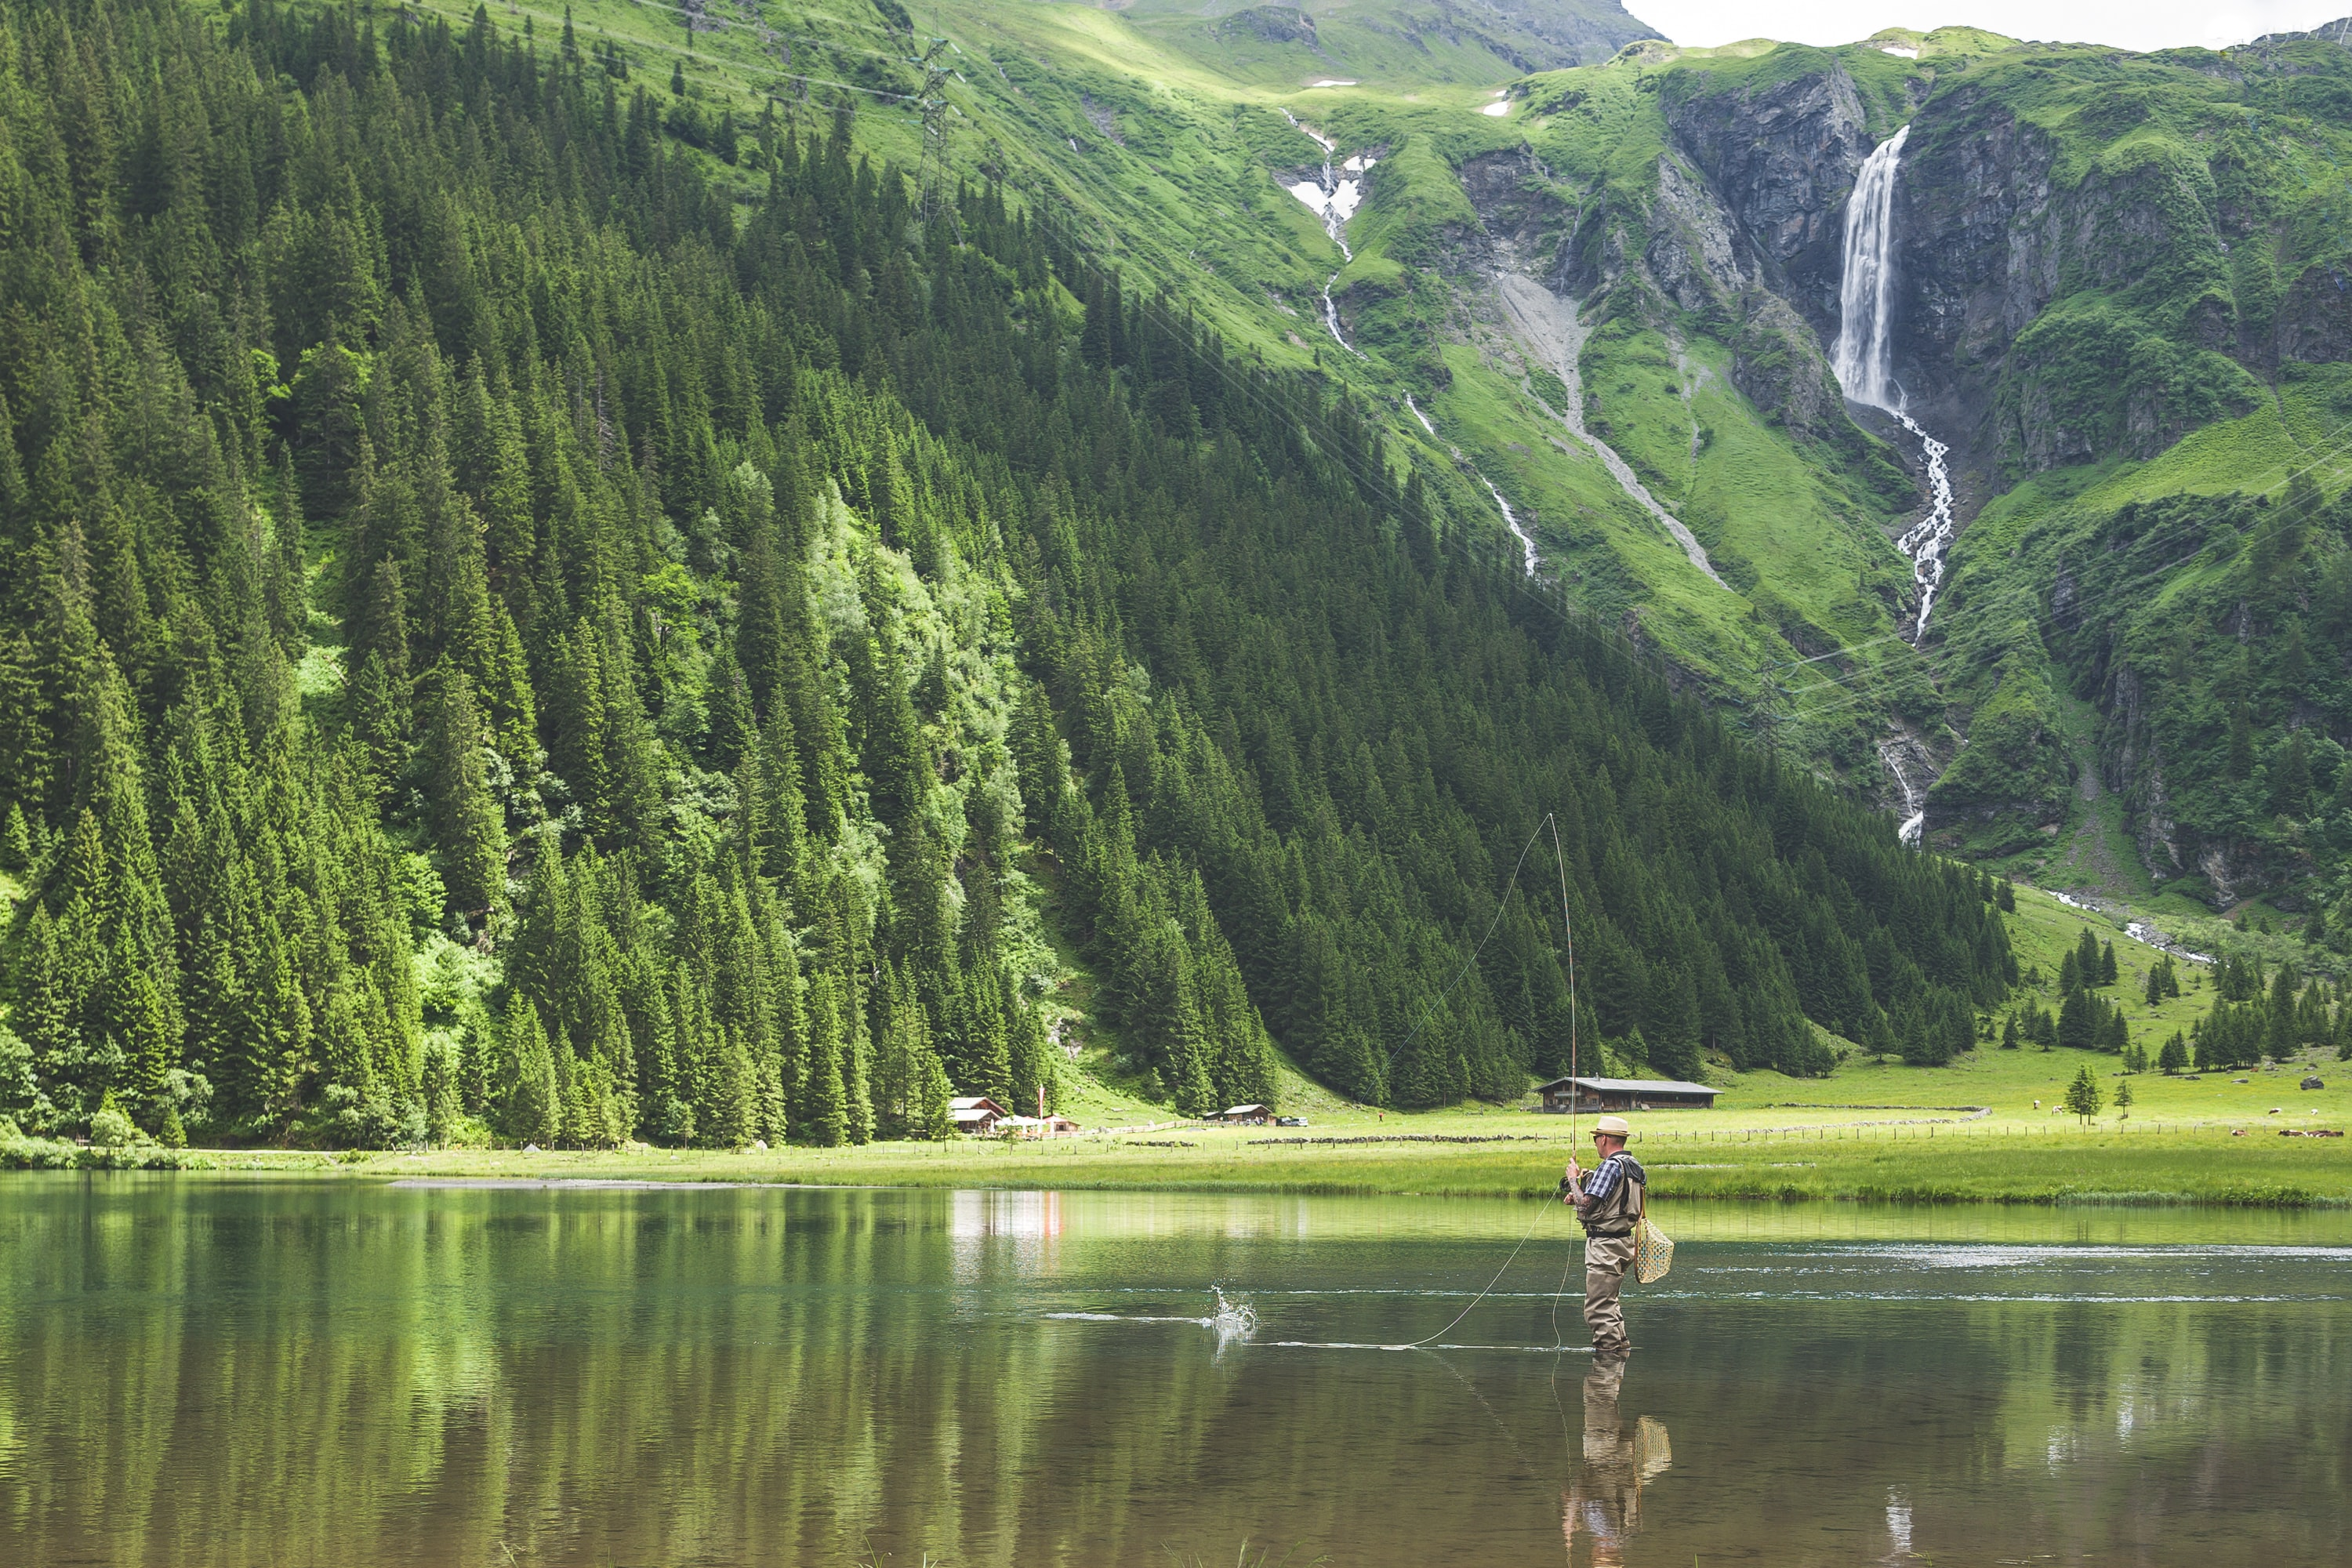 A man fishing while standing in shallow water in a mountain lake